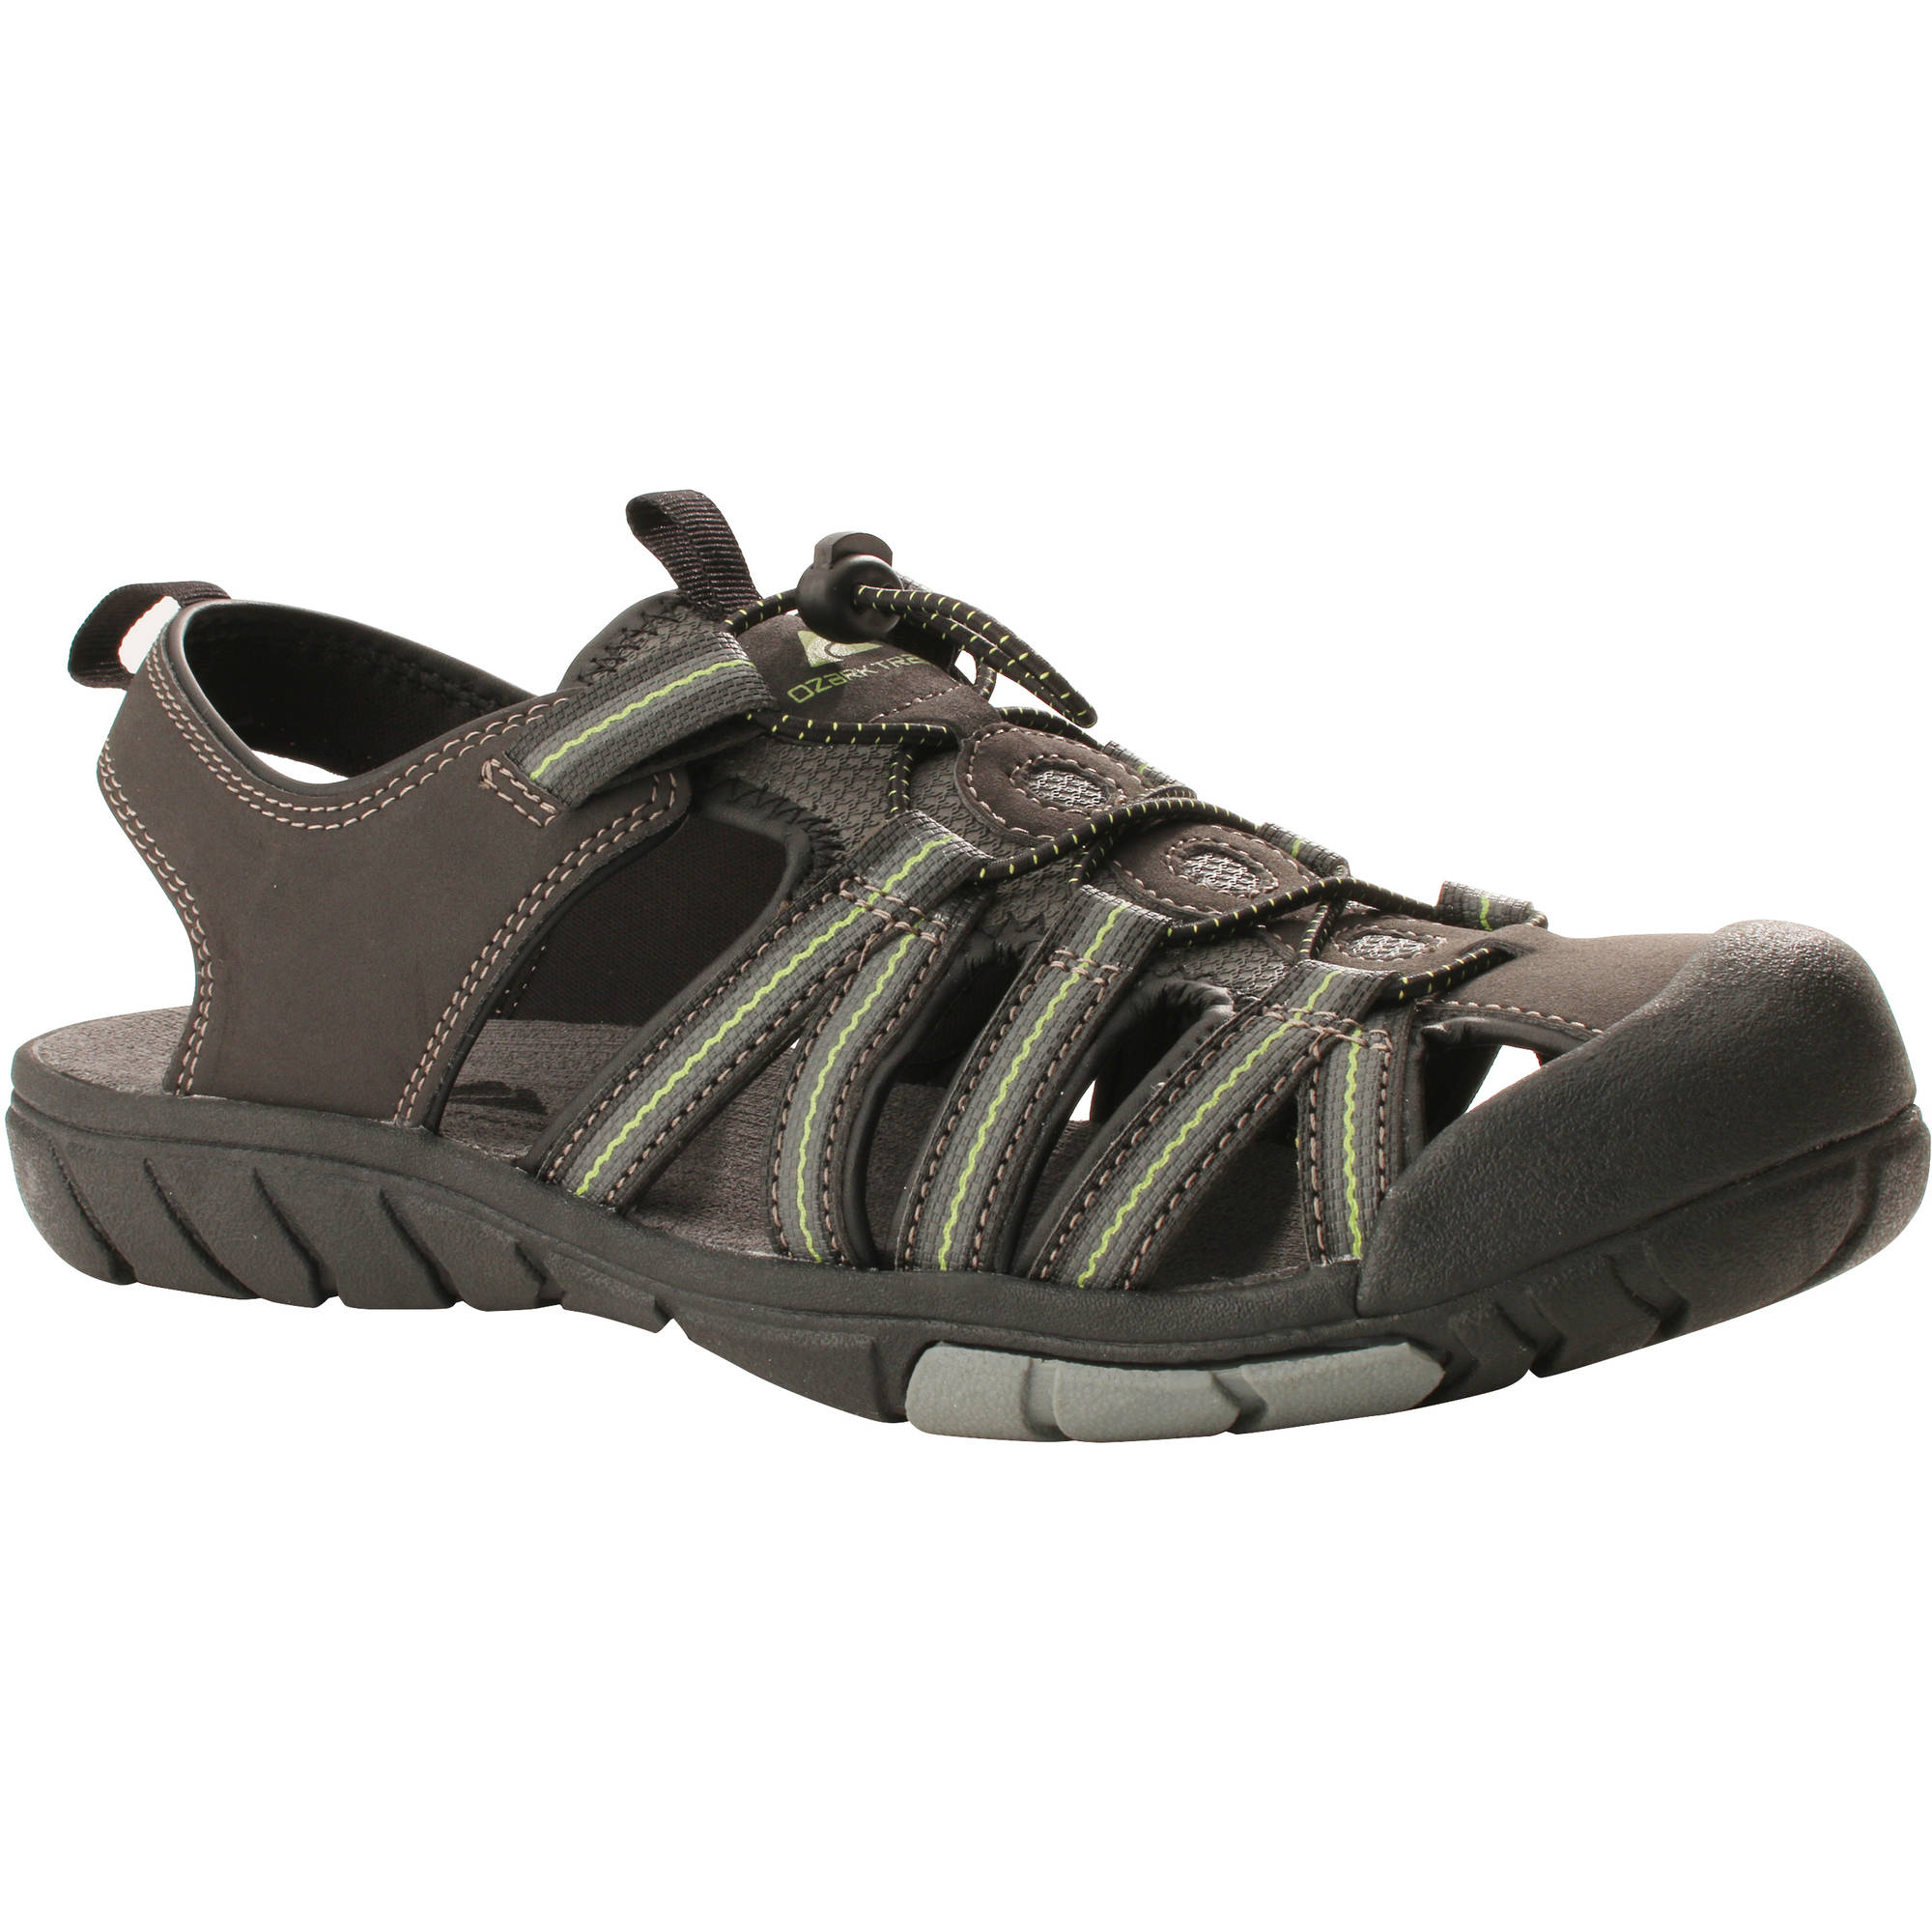 09f78f57c84cd3 OP - OP Mens  Menhaten Water Shoe - Walmart.com